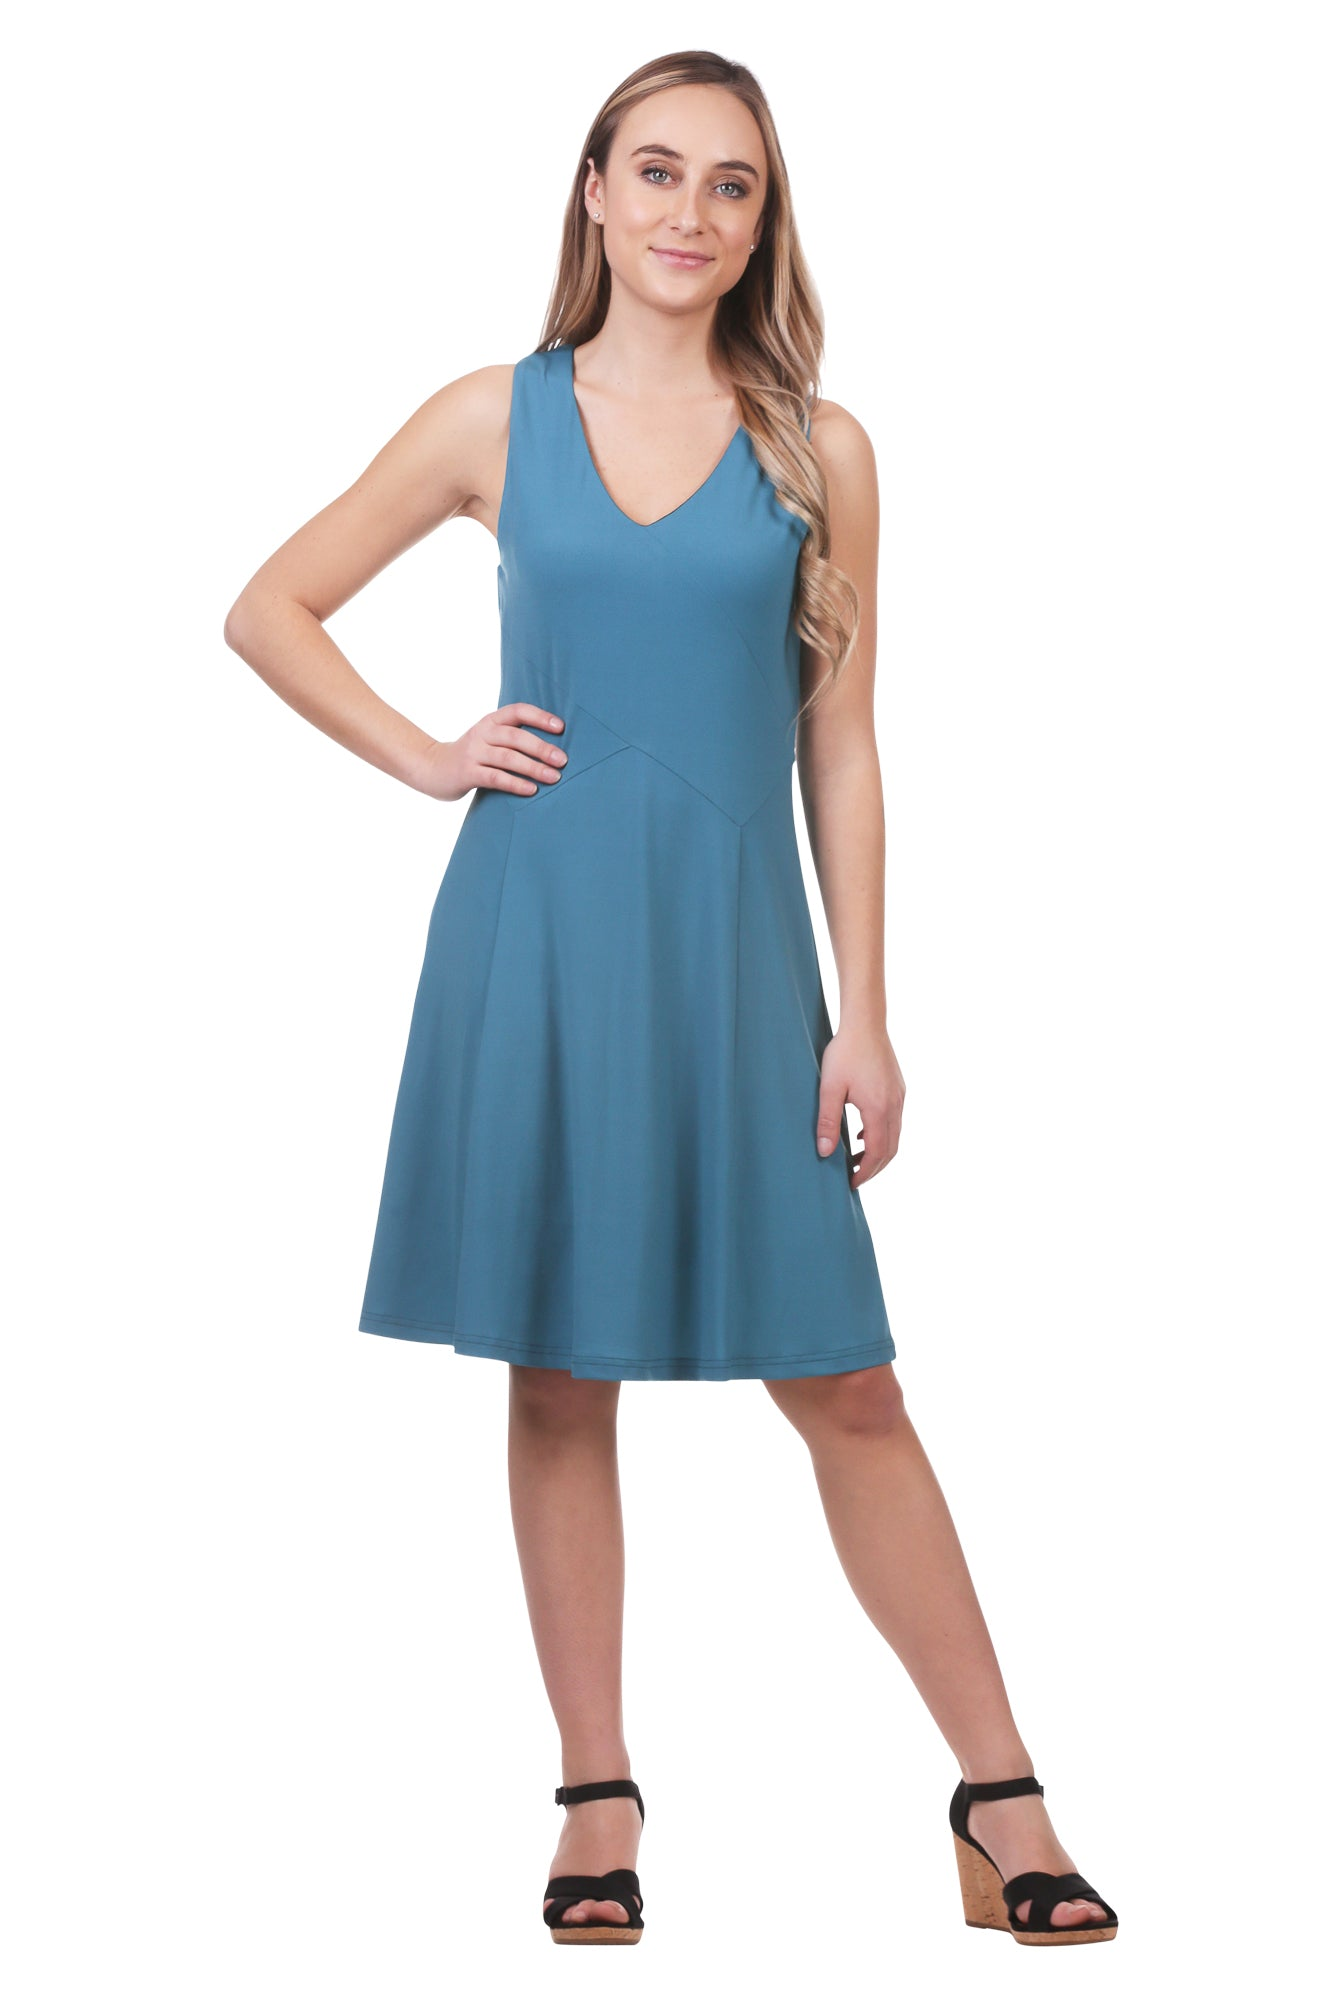 Cross Over Panel A-Line Dress | Black and Blue V-Neck Dress | Neesha